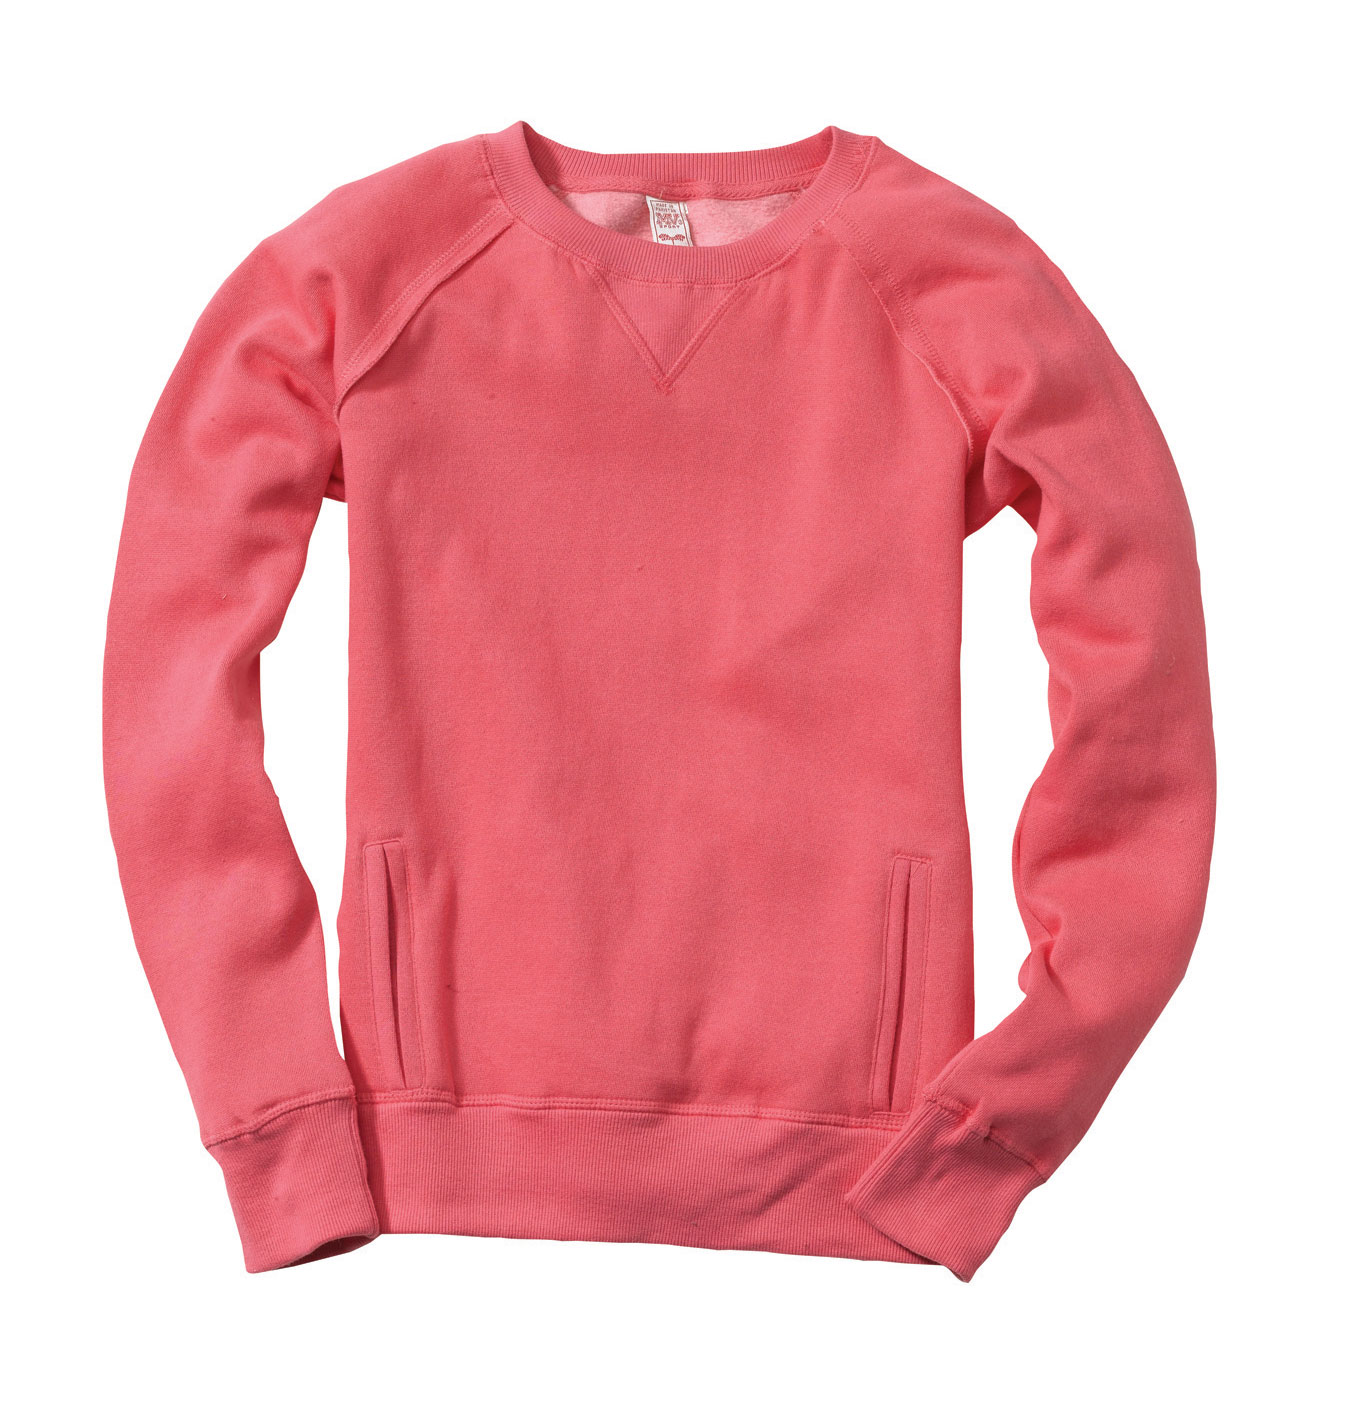 MIA Washed Crewneck Sweatshirt